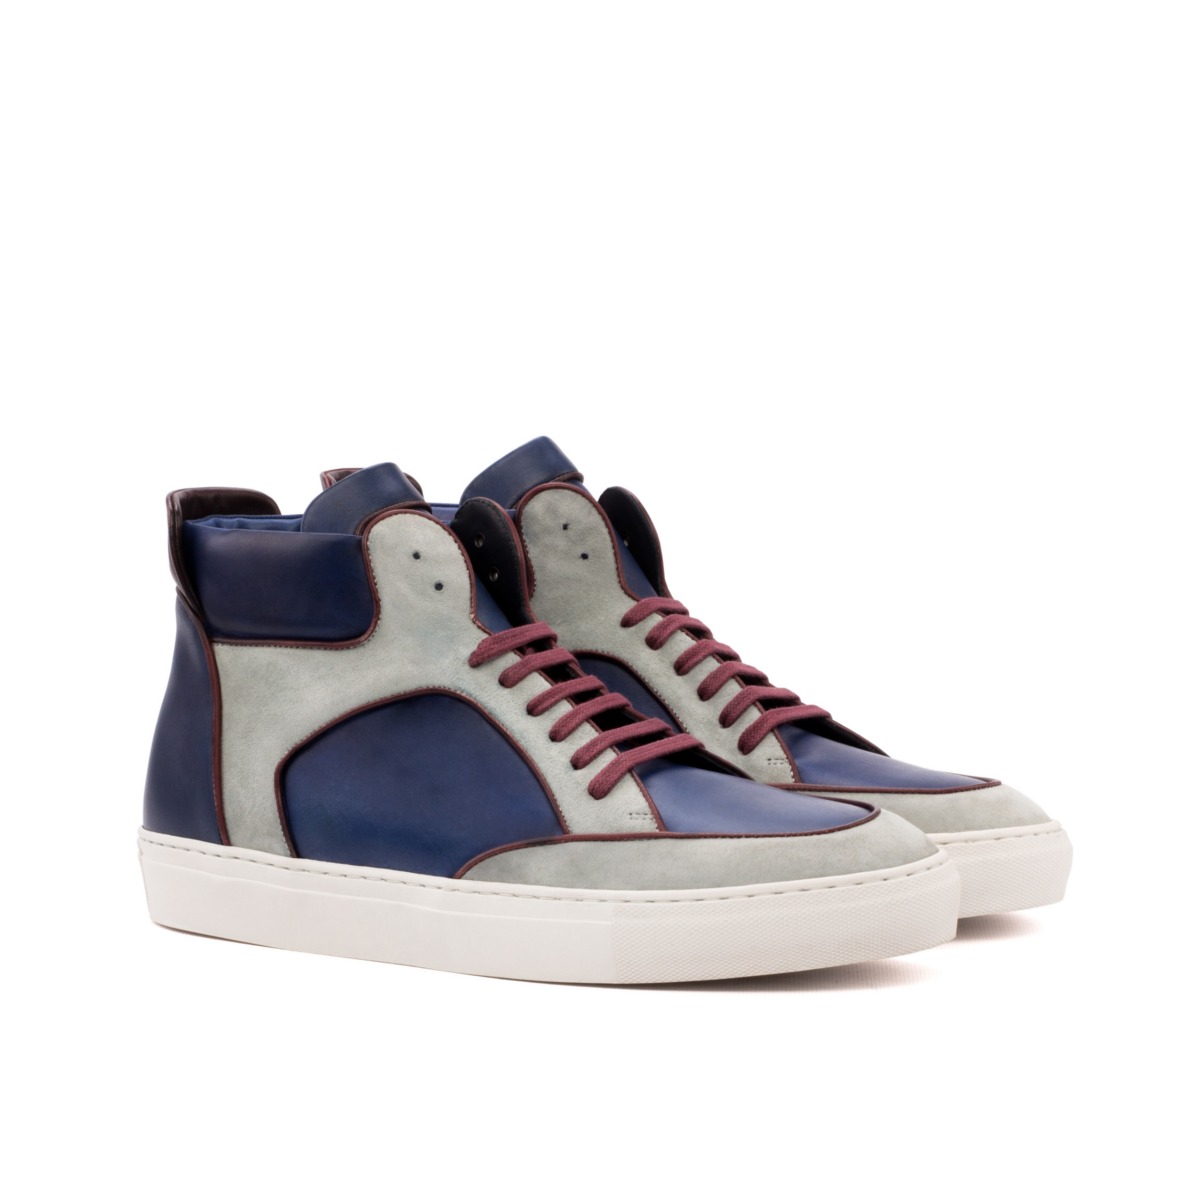 Hand painted high top sneakers